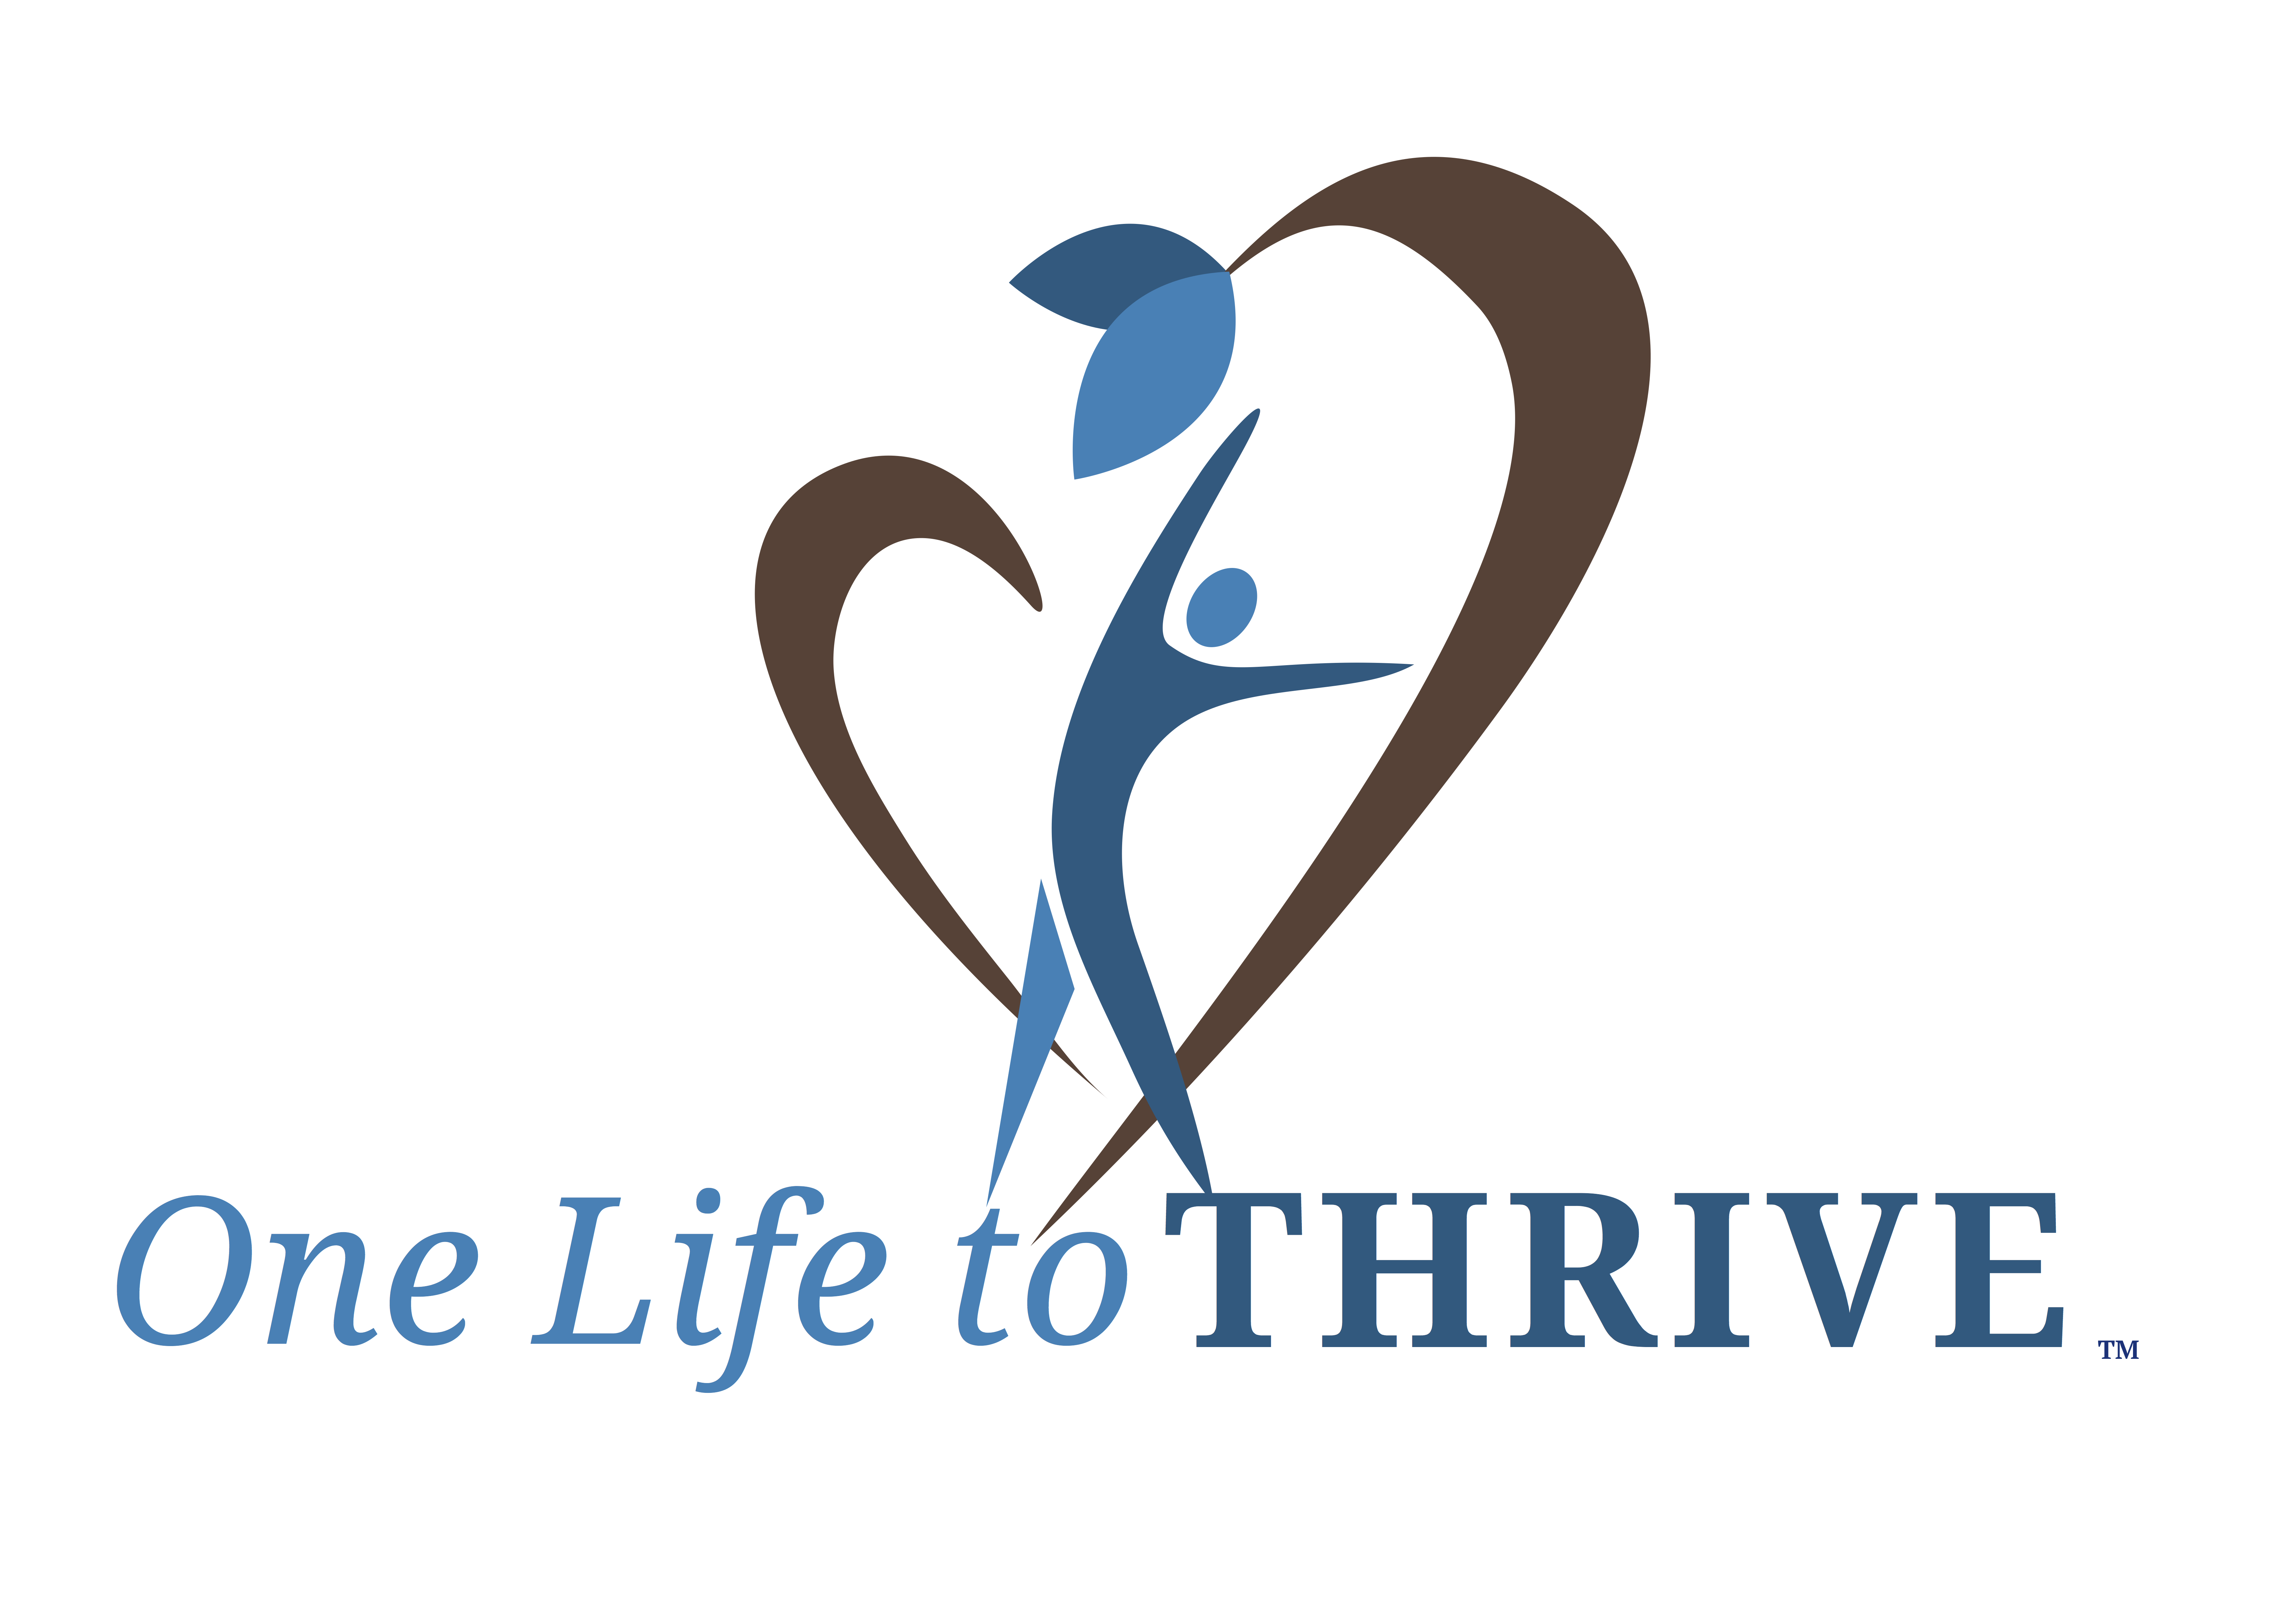 One Life to THRIVE